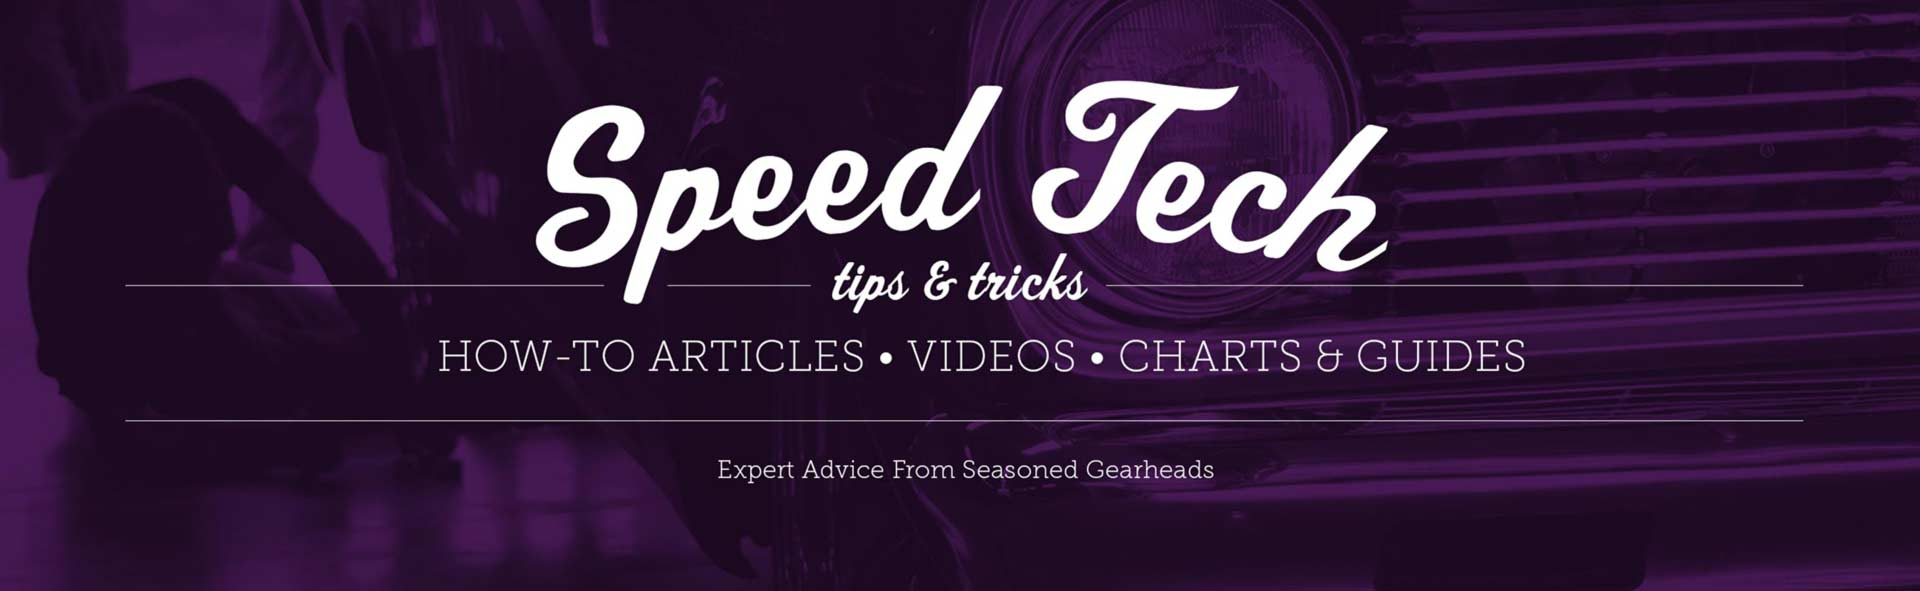 Visit Speed Tech helpul automotive tips and techniques tricks and videos